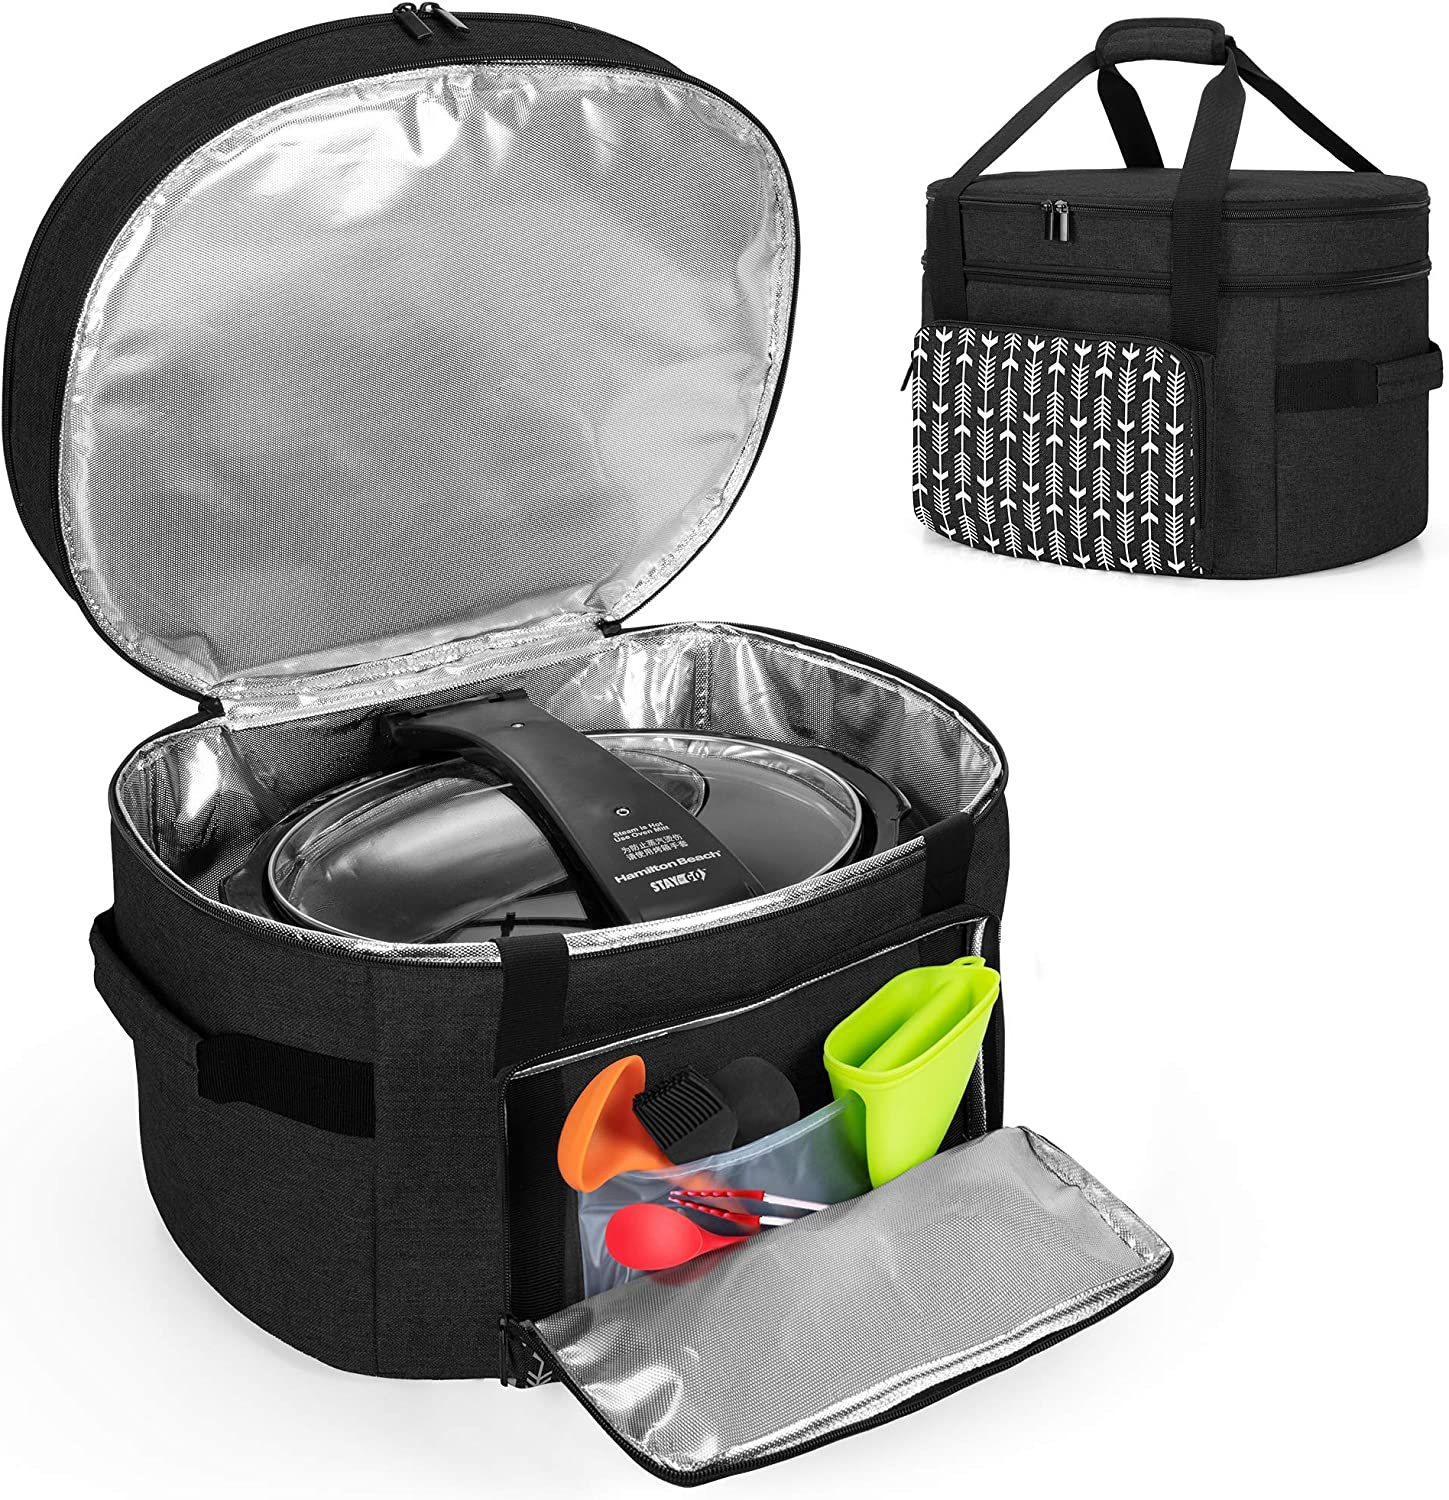 YARWO Slow Cooker Travel Bag with Bottom Board Compatible with Crock-Pot and Hamilton Beach 6-8 Quart Oval Slow Cooker, Double Layers Slow Cooker Carrier, Black with Arrow (Bag Only)